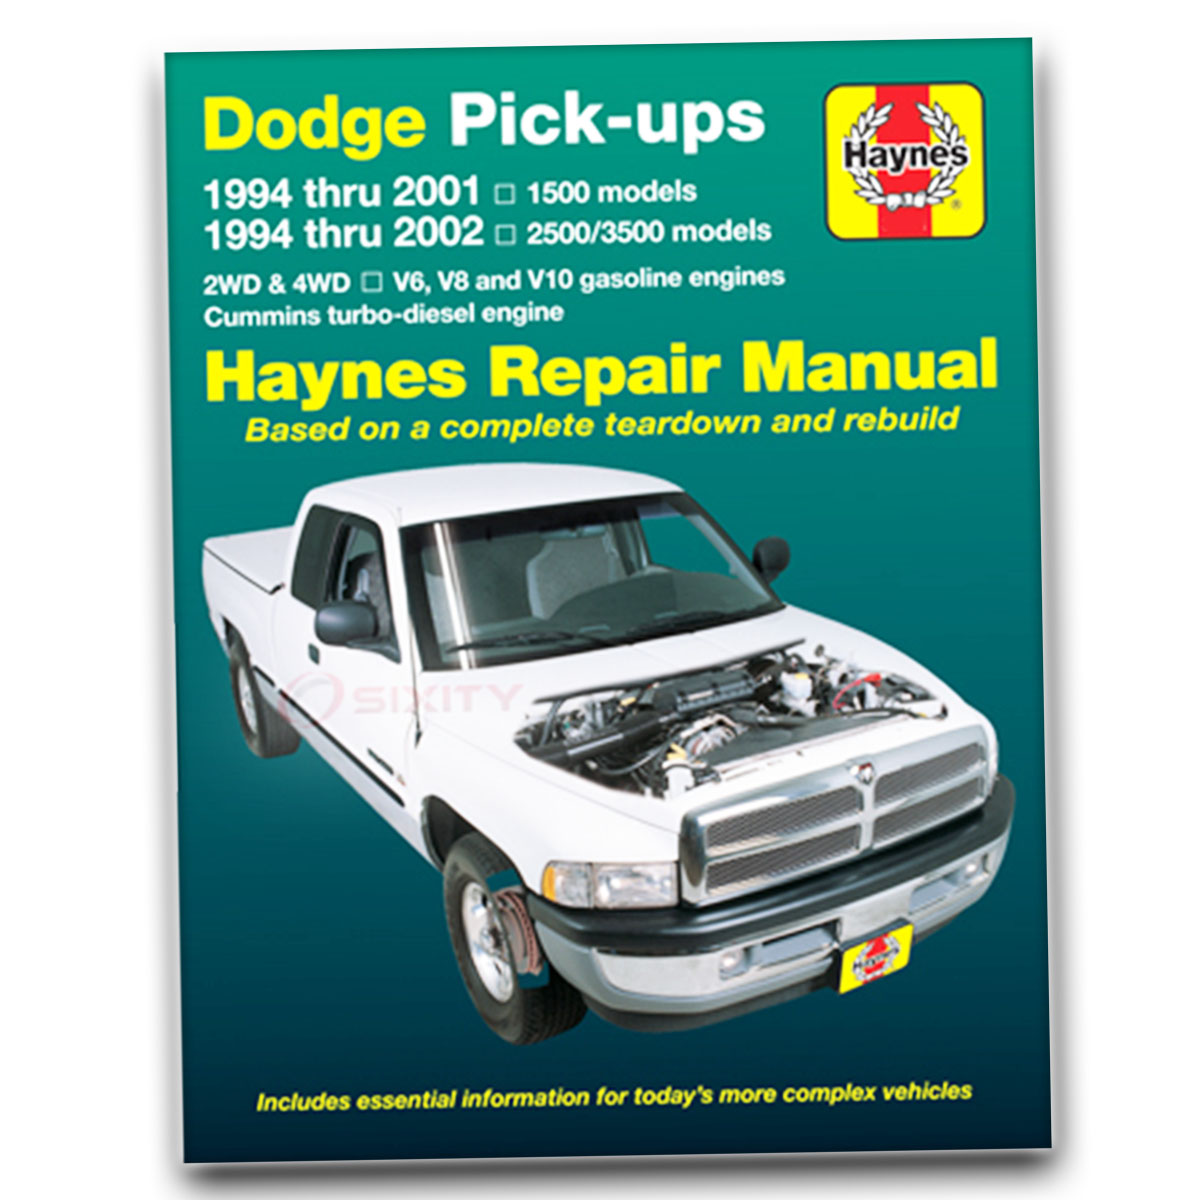 dodge ram 1500 haynes repair manual laramie base st ws sport shop rh ebay com 2002 dodge ram 1500 repair manual download 2002 dodge ram 1500 repair manual download